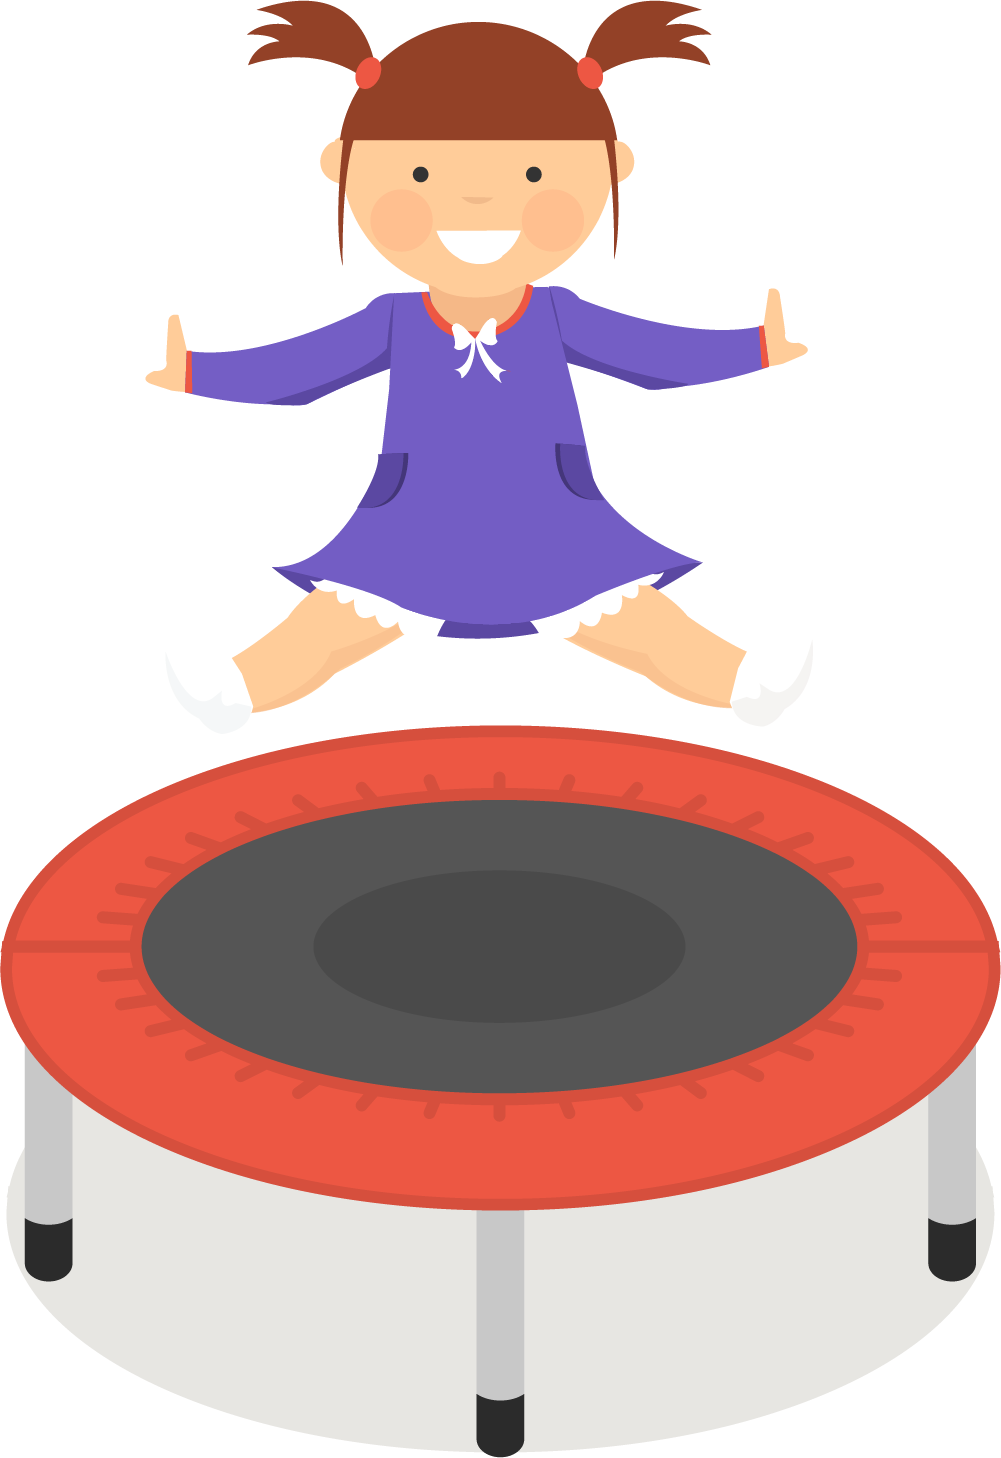 graphic royalty free library Trampoline clipart. Jumping aerogym clip art.